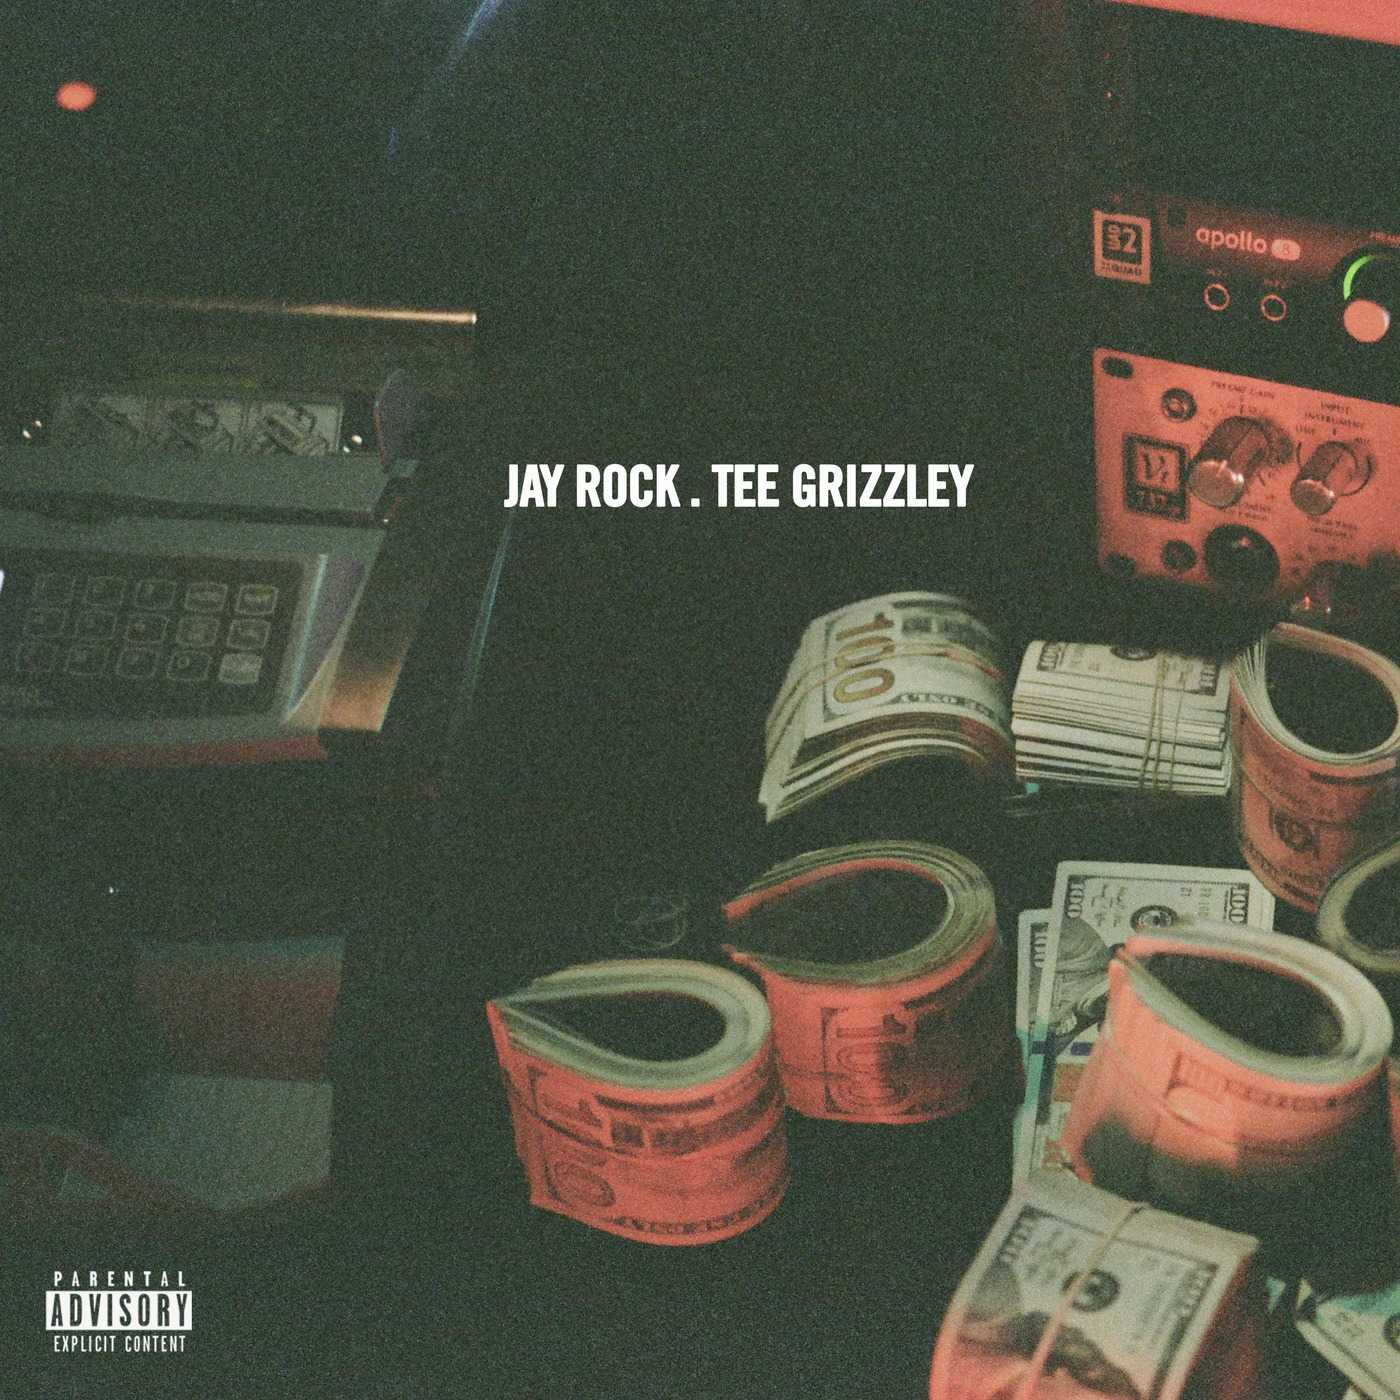 New Single: Jay Rock | Sh*t Real (feat. Tee Grizzley) [Audio]